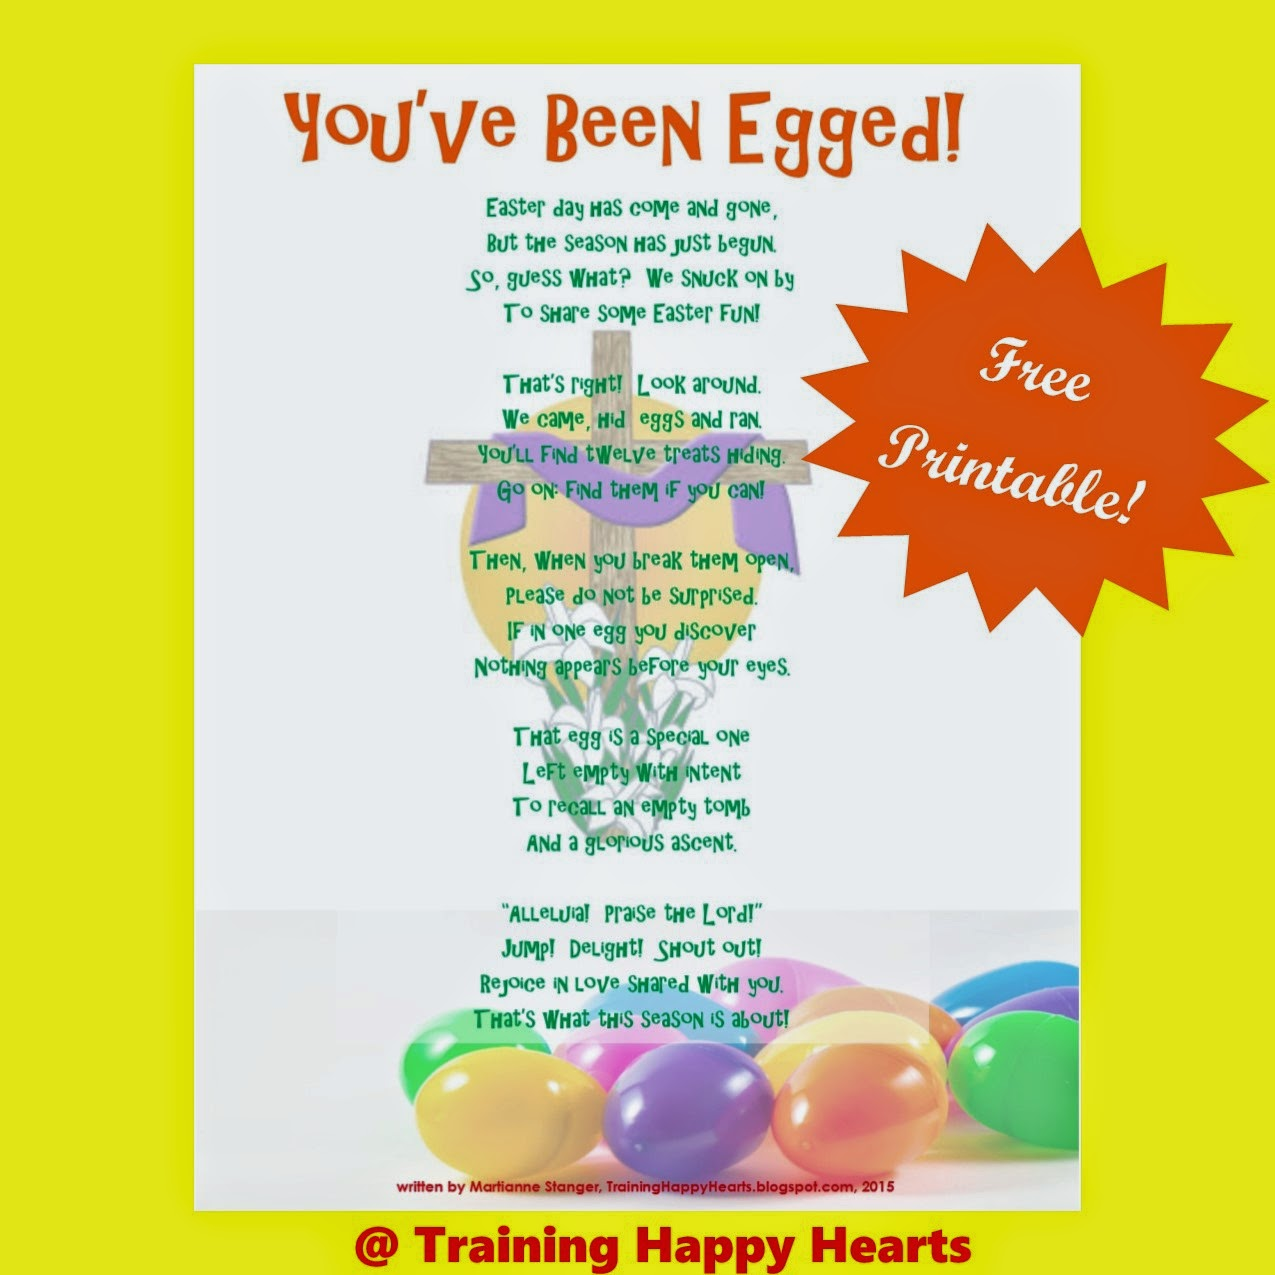 http://traininghappyhearts.blogspot.com/2015/04/go-egging-this-easter-season-with-free.html